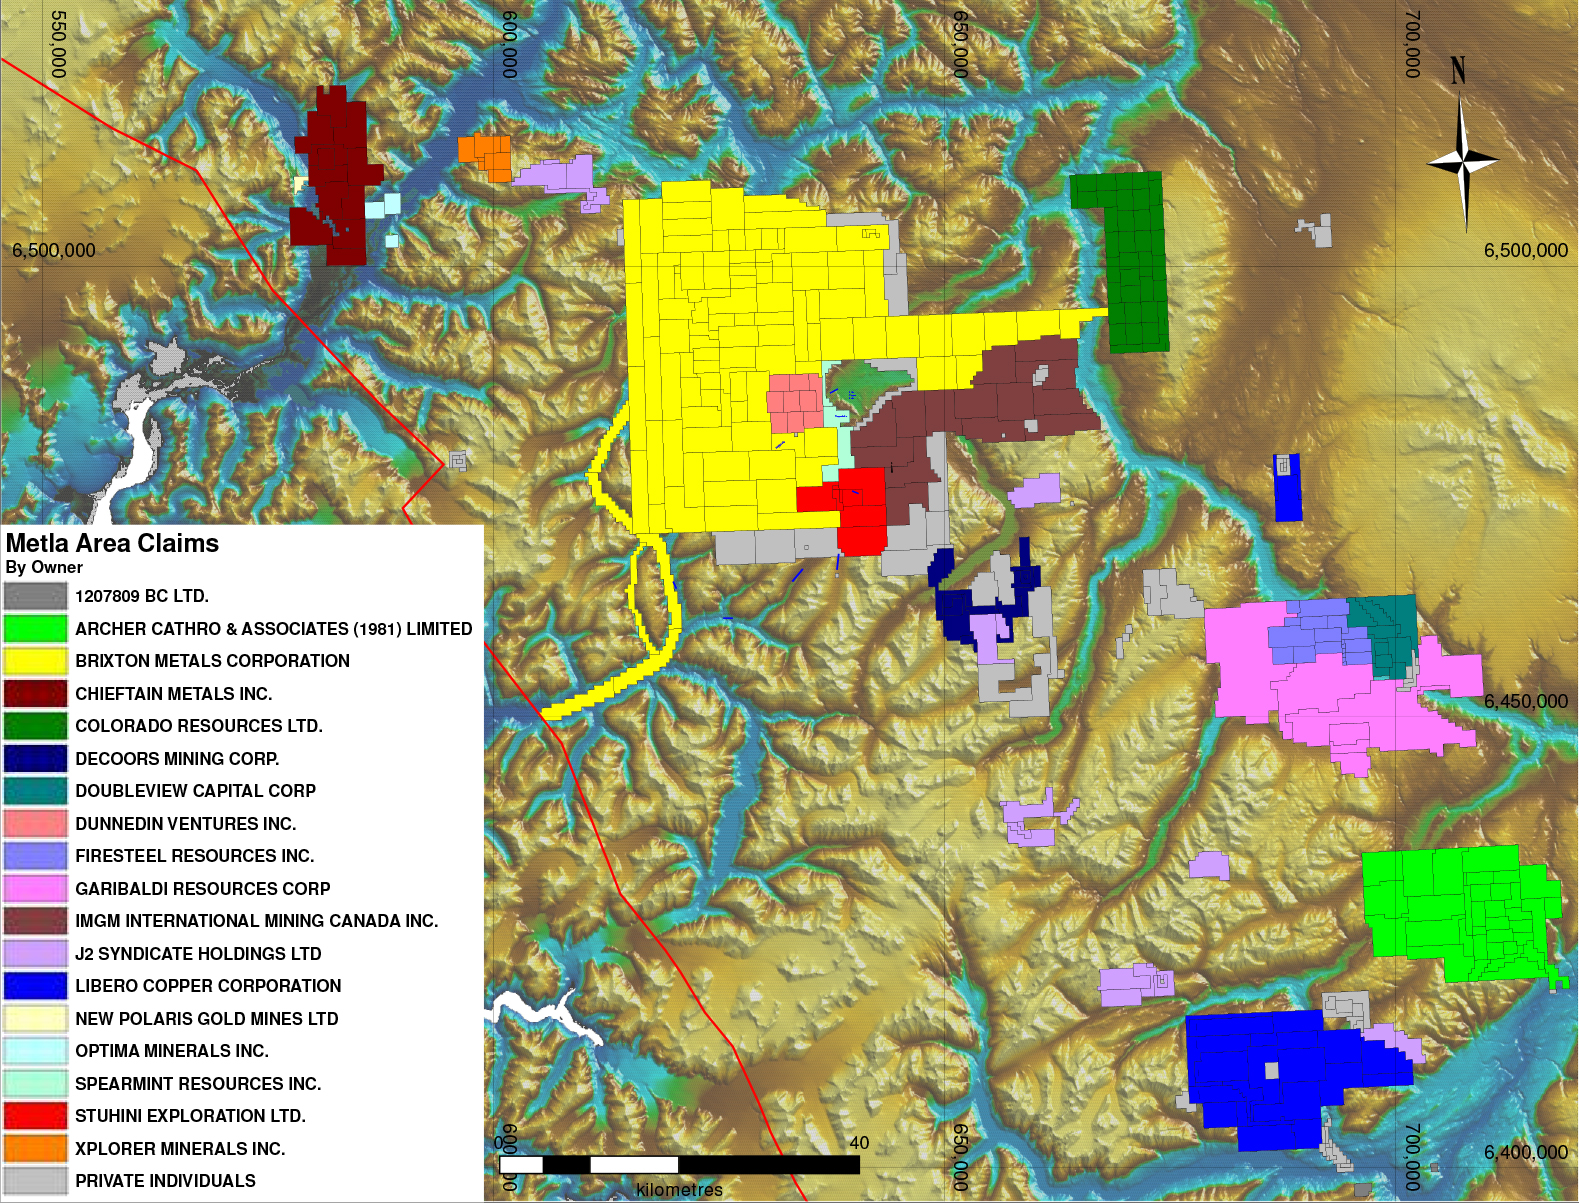 Claims in Area by Owner-Big scale_compressed-2.jpg